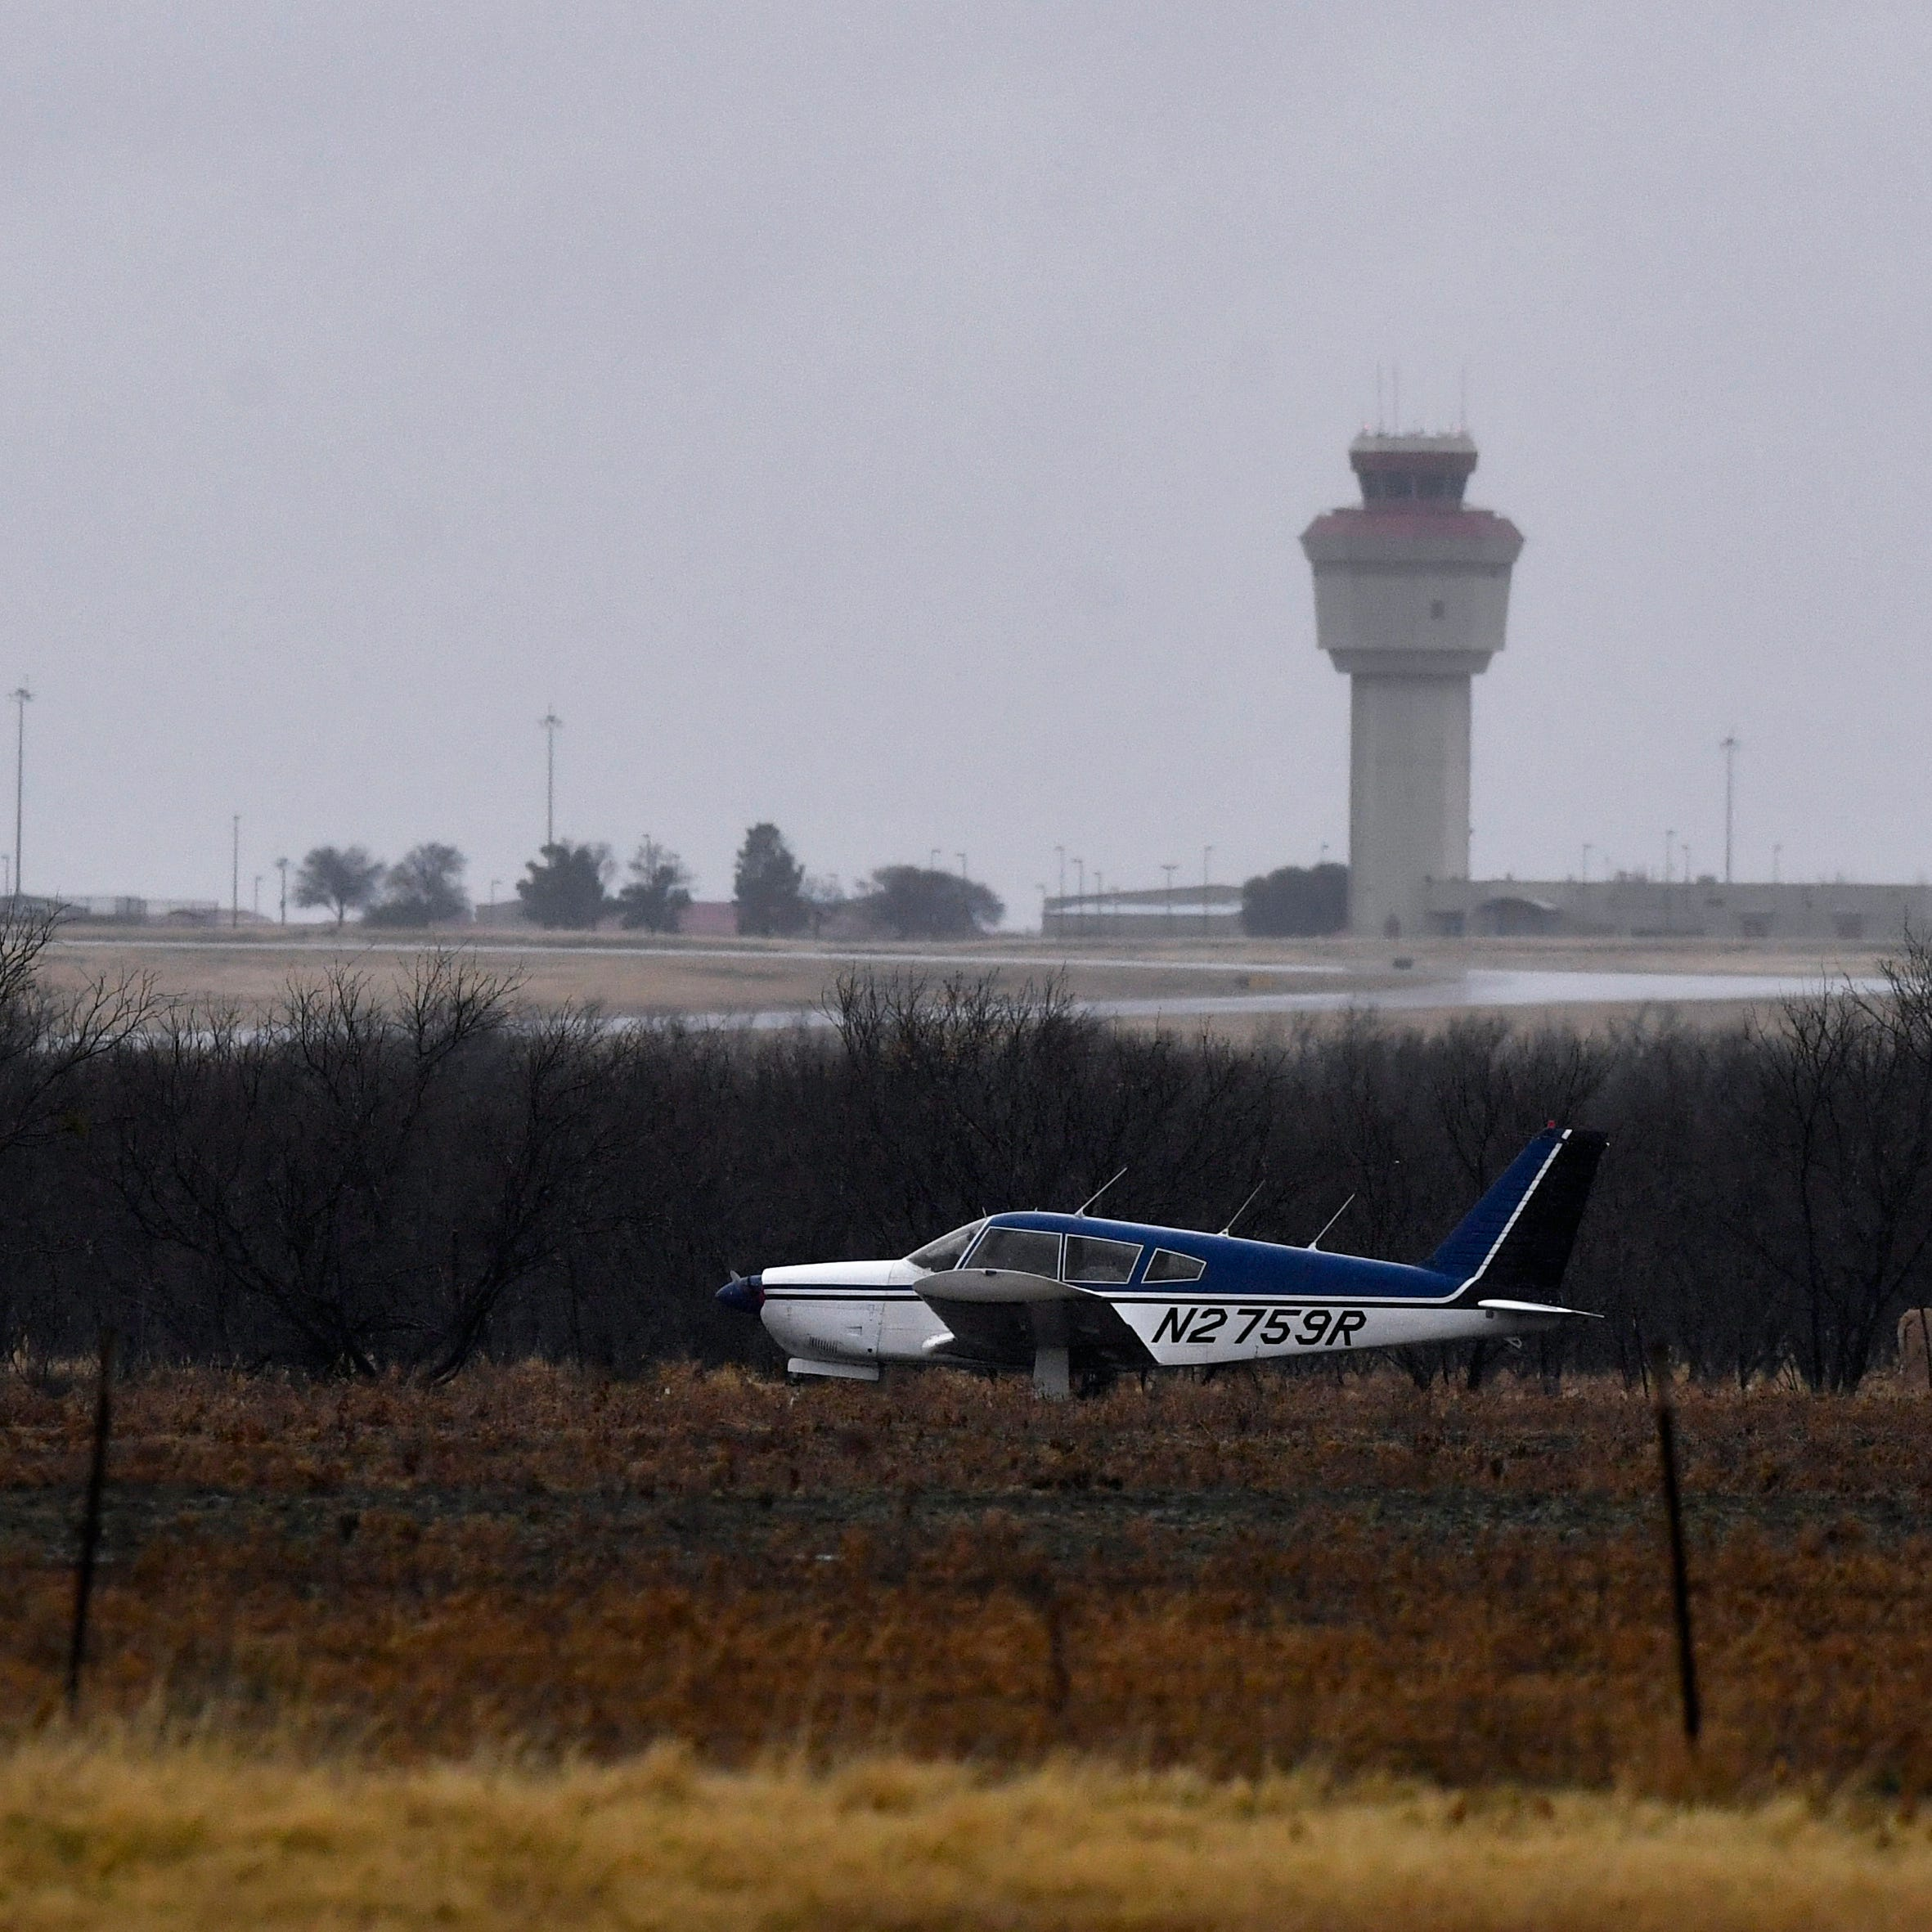 Pilot lands safely in field near Abilene Regional Airport